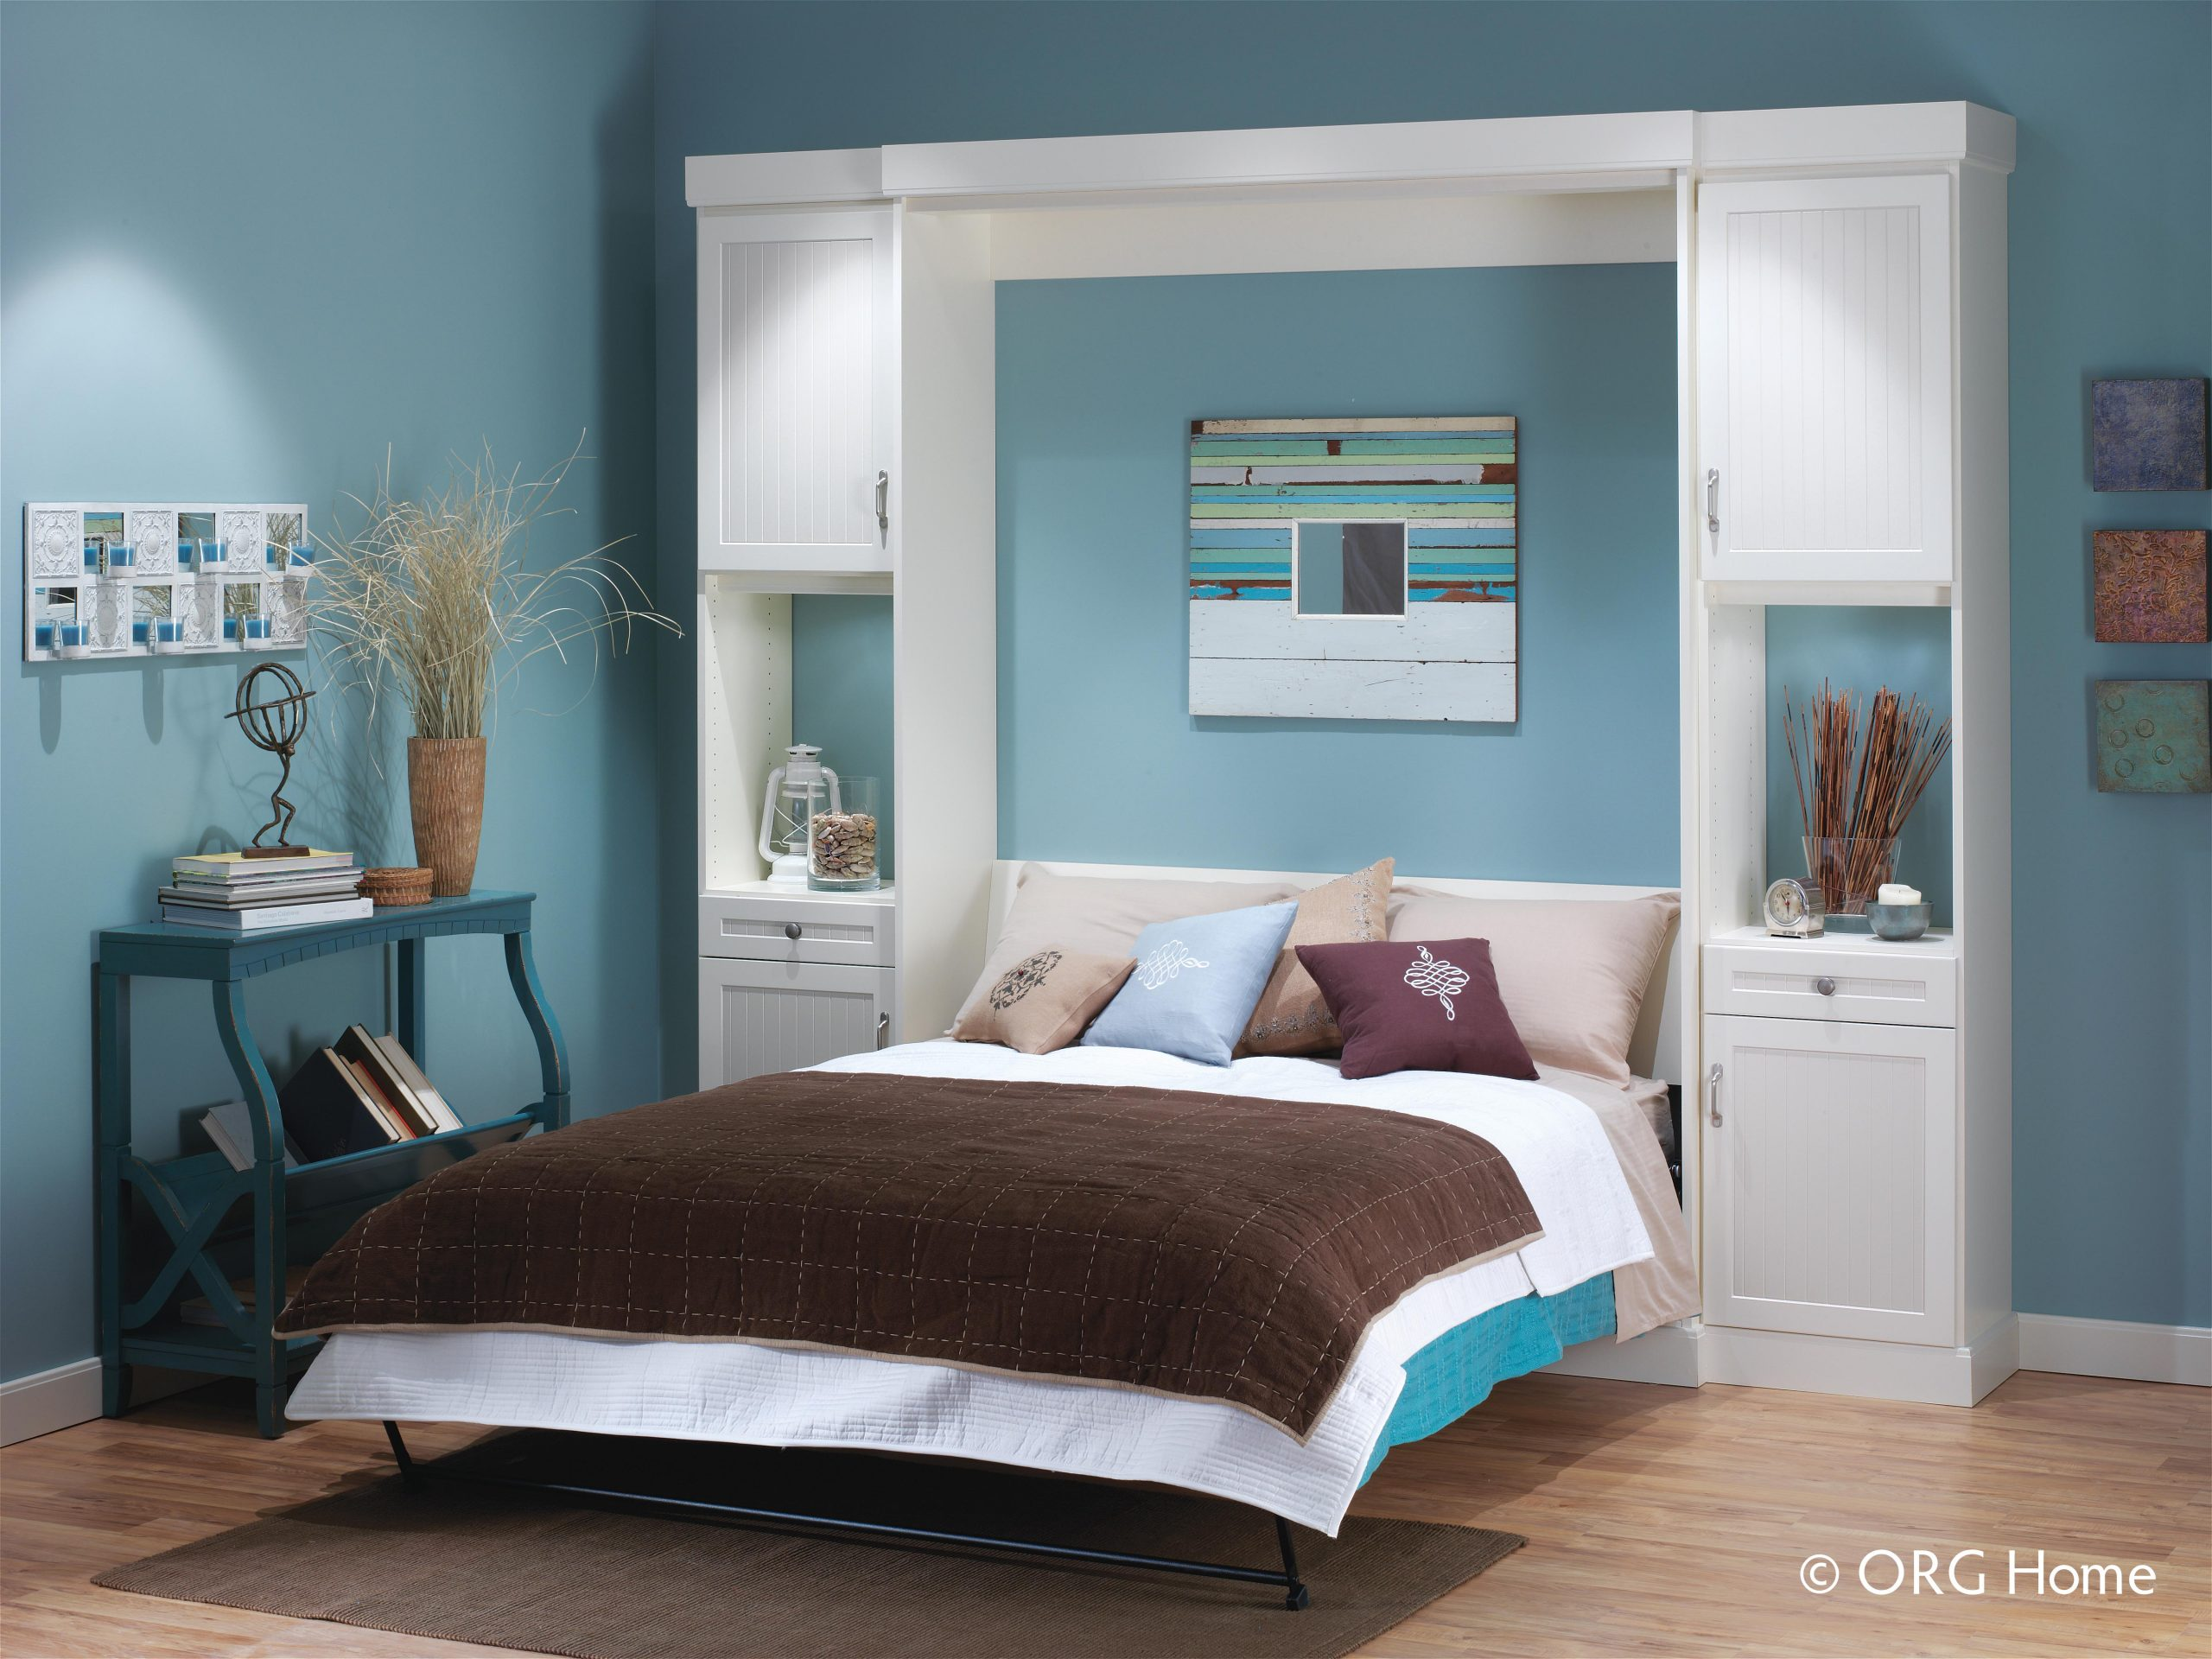 Bed Board Murphy Bed Opened Murphy Beds Alpha Closets Company Inc, 6084 Gulf Breeze Pkwy, Gulf Breeze, Fl 32563 (850) 934 9130